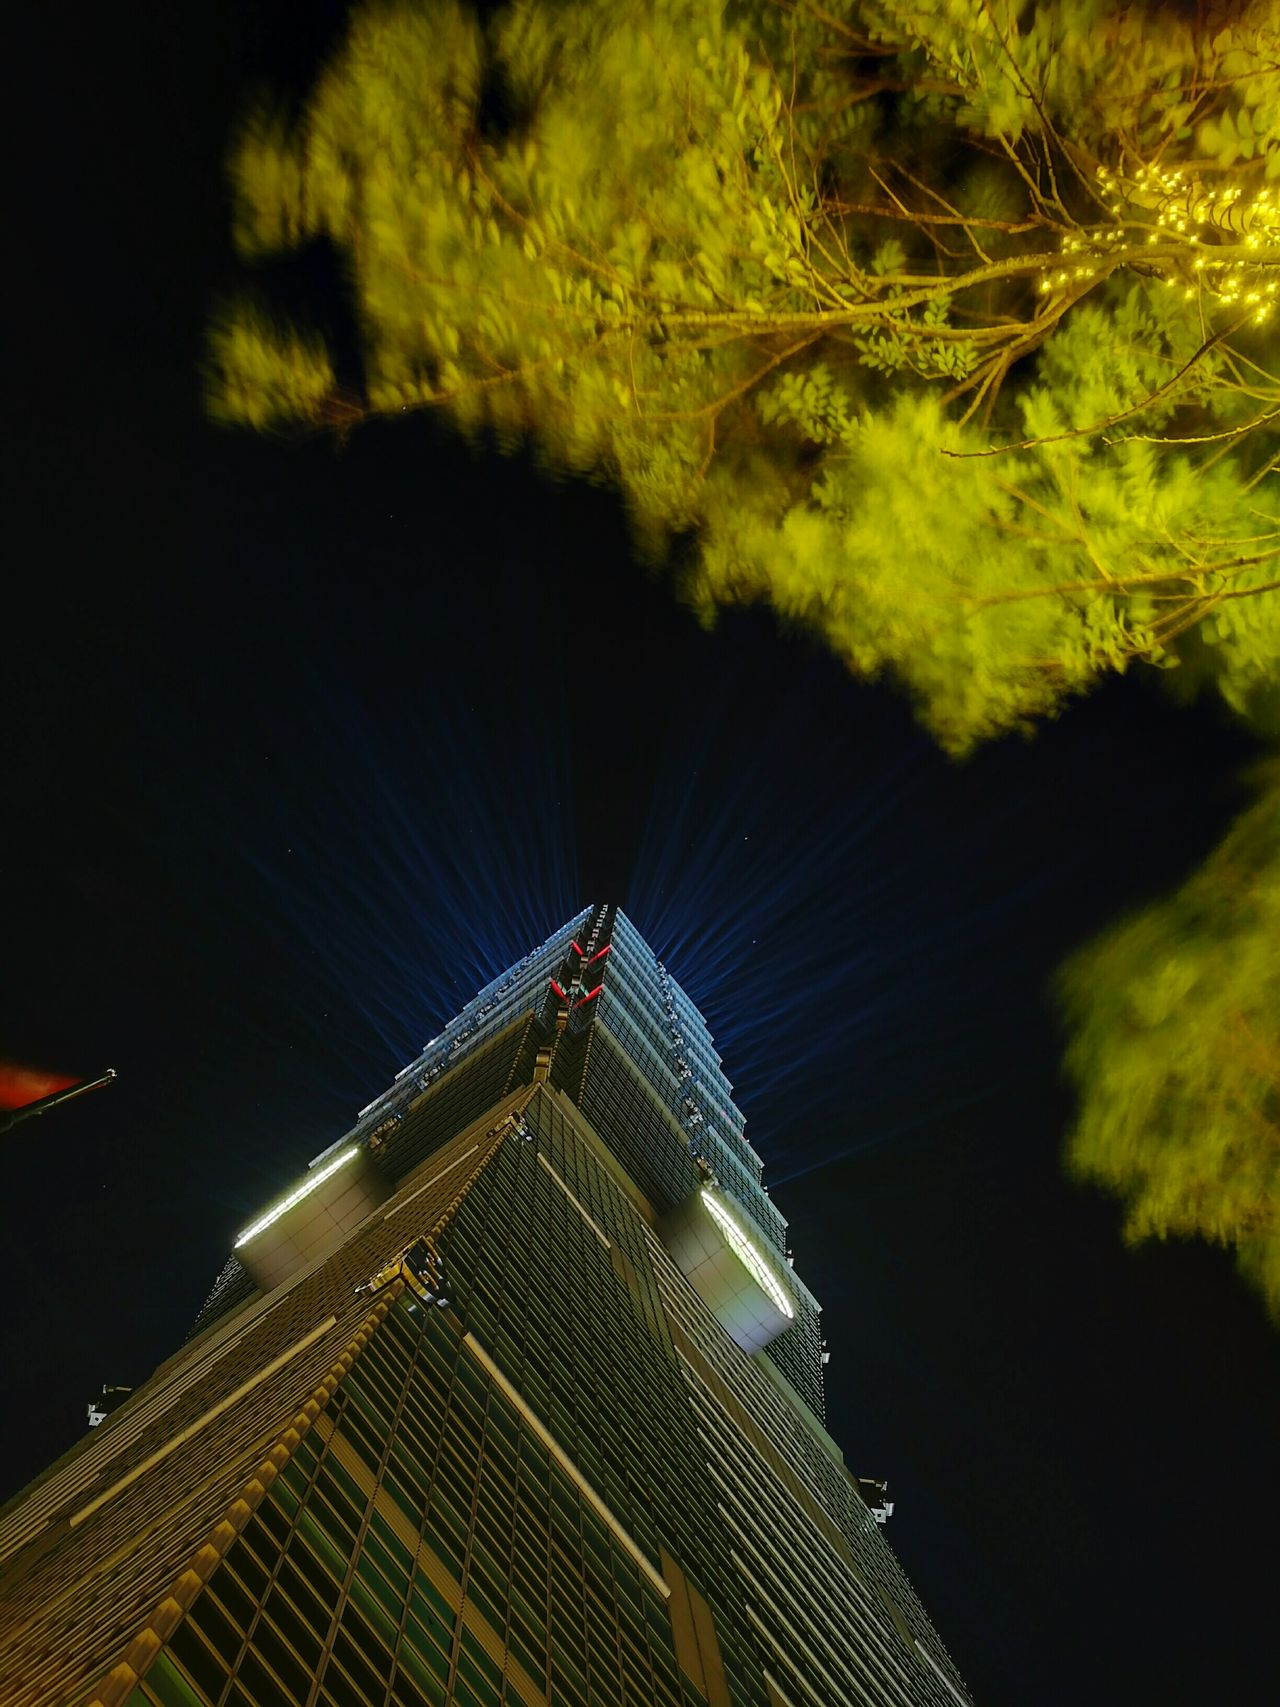 NYE Taipei Taipei 101 Colour Of Life City Nightlife Out For A Walk City Life Enjoying Life Downtown District Taipei 101 At Night NYE New Year Around The World New Year 2017